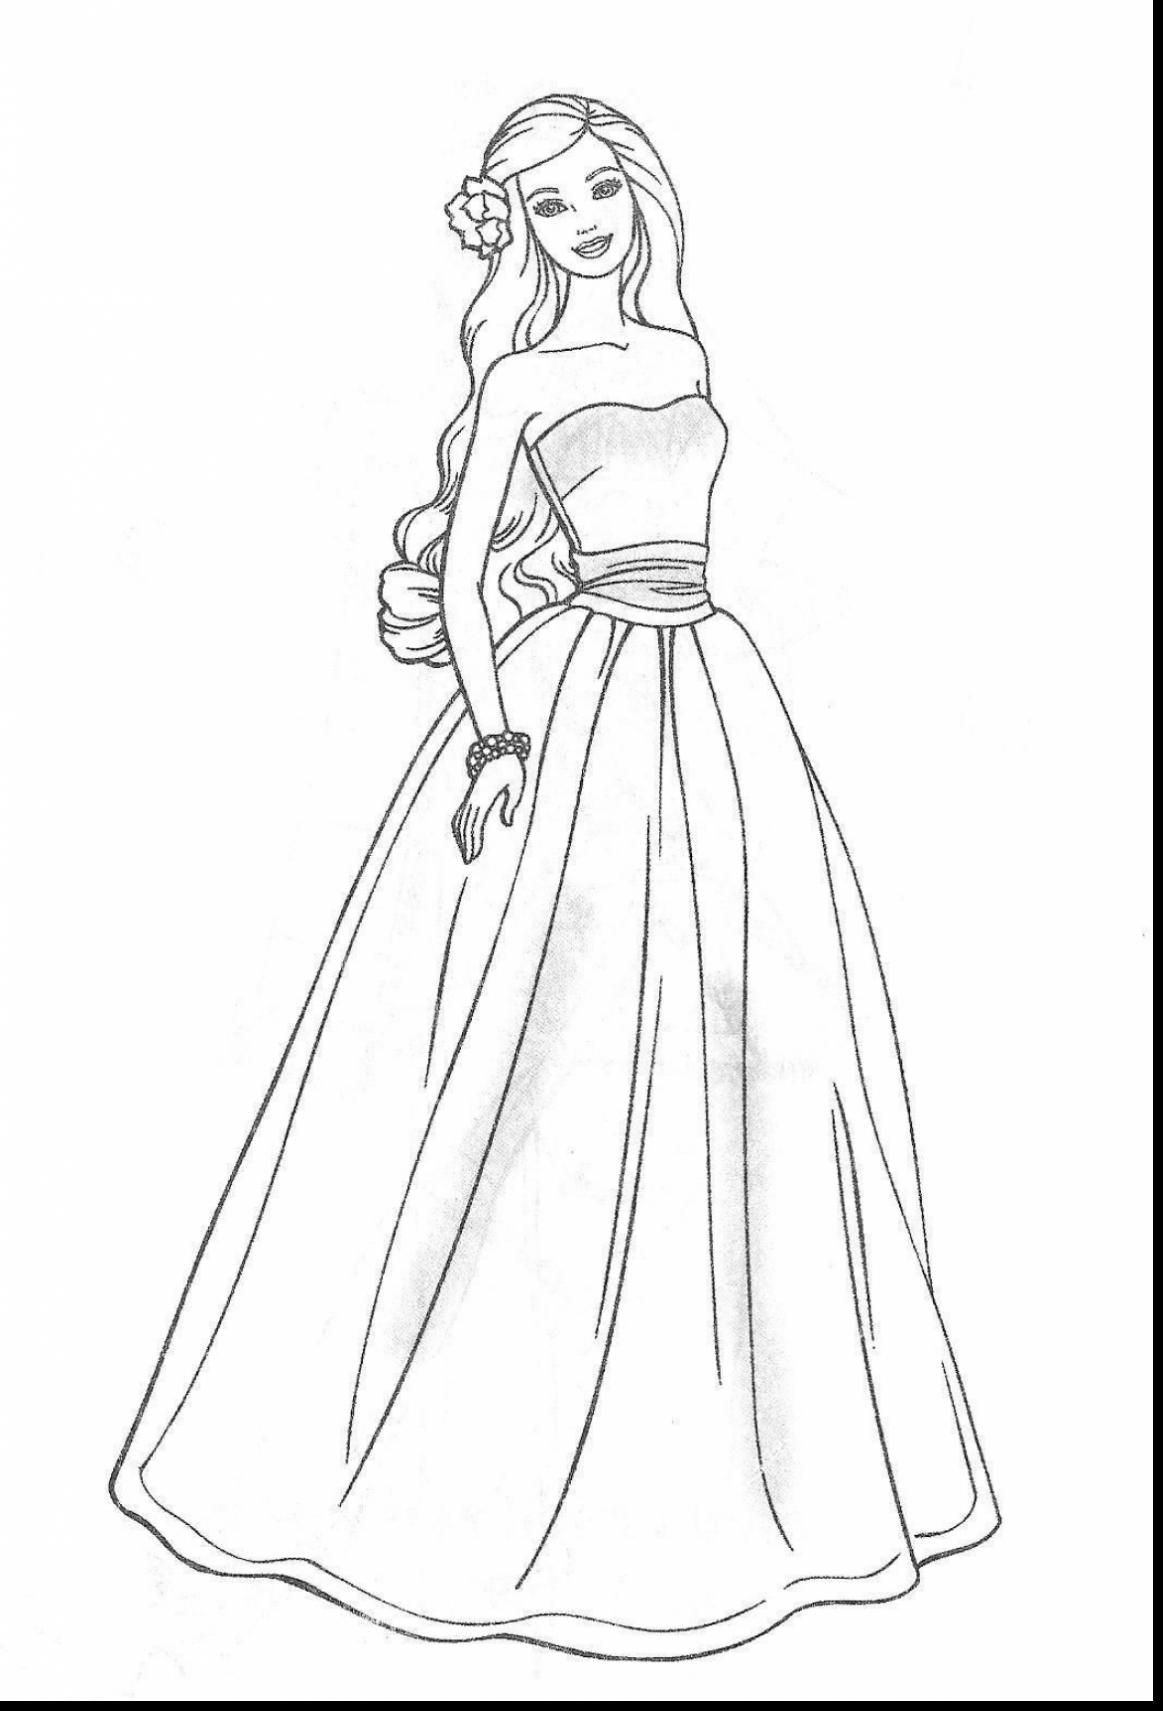 Barbie Coloring Pages For Teenager Free Coloring Sheets Barbie Coloring Pages Princess Coloring Pages Barbie Coloring